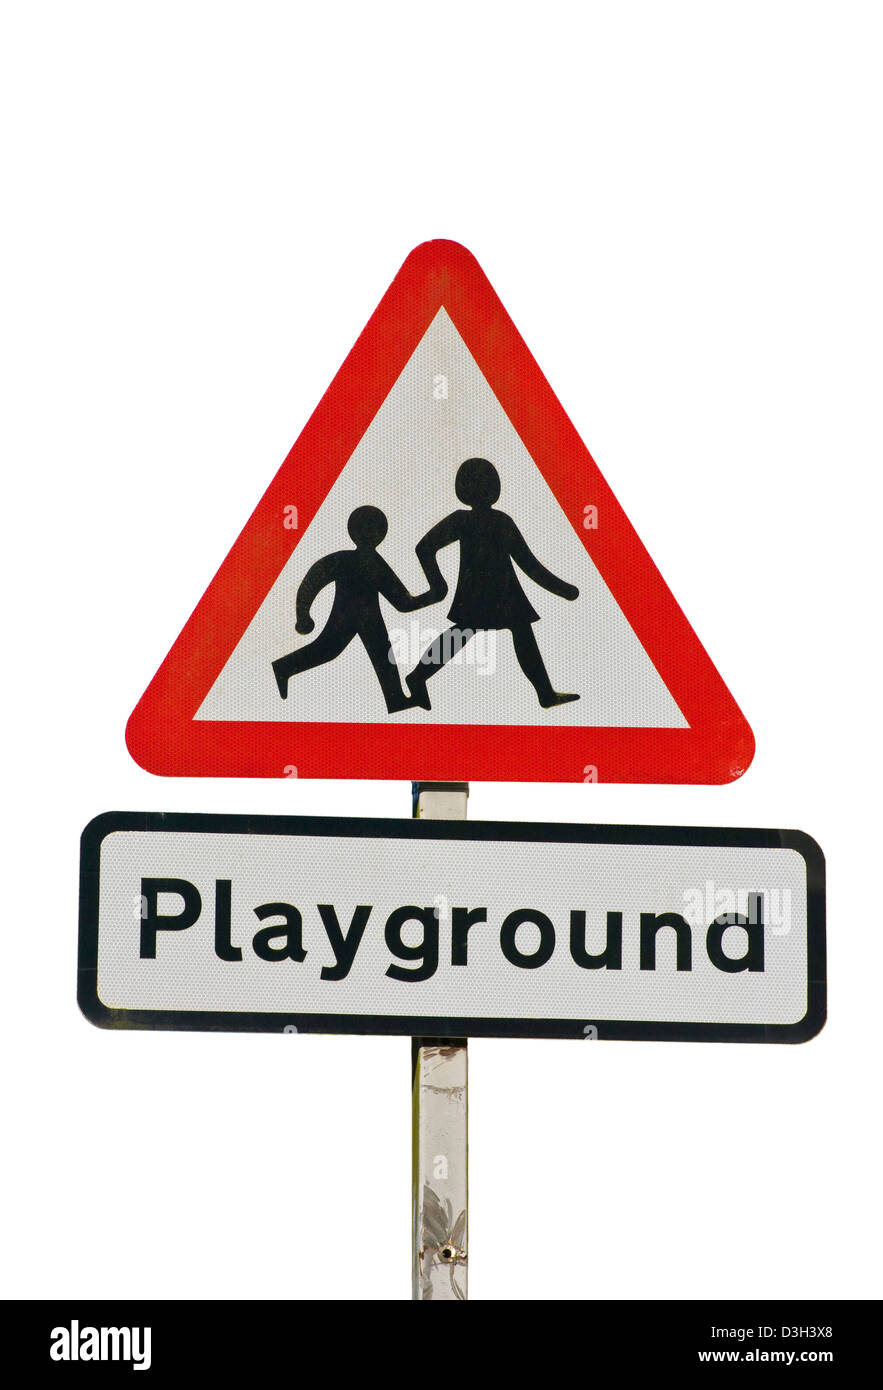 Road Sign Uk Cut Out Stock Photos & Road Sign Uk Cut Out ...